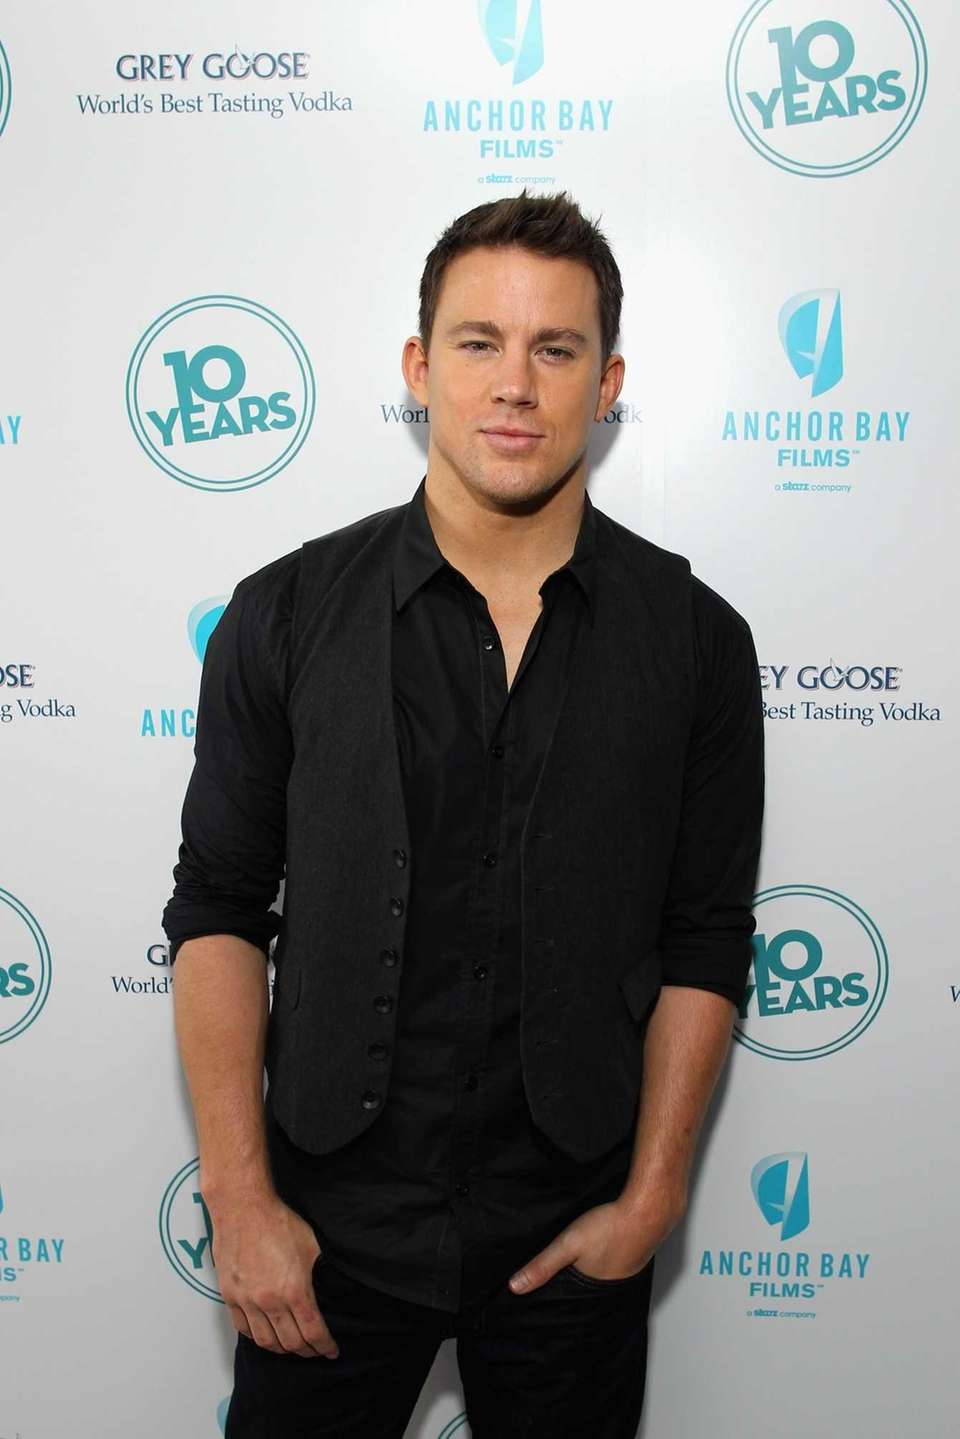 2012 has been actor Channing Tatum's year, with